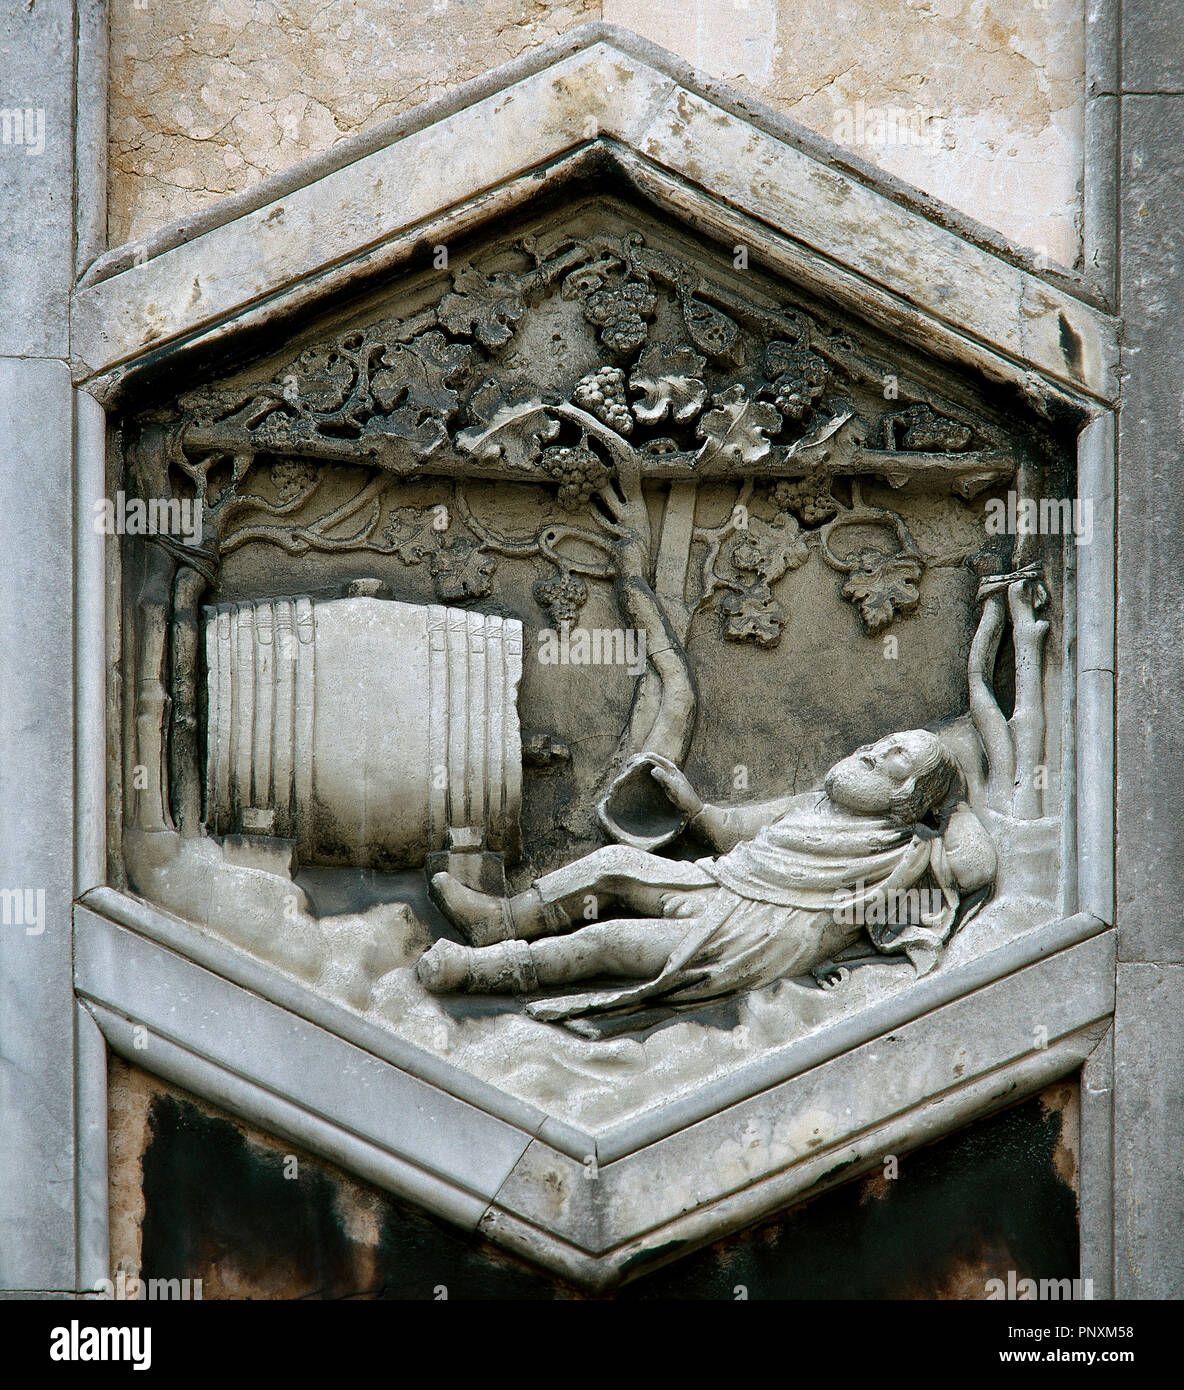 Noah. Pre-Flood Patriarchs. Relief depicting Noah drunk. Collaborator of Andrea Pisano (Master of Noah), 1334-1336. Reproduction of one of the panels that decorate the bell tower of the Duomo (the originals are located in the Museo della Opera del Duomo). Florence, Tuscany, Italy. Stock Photo